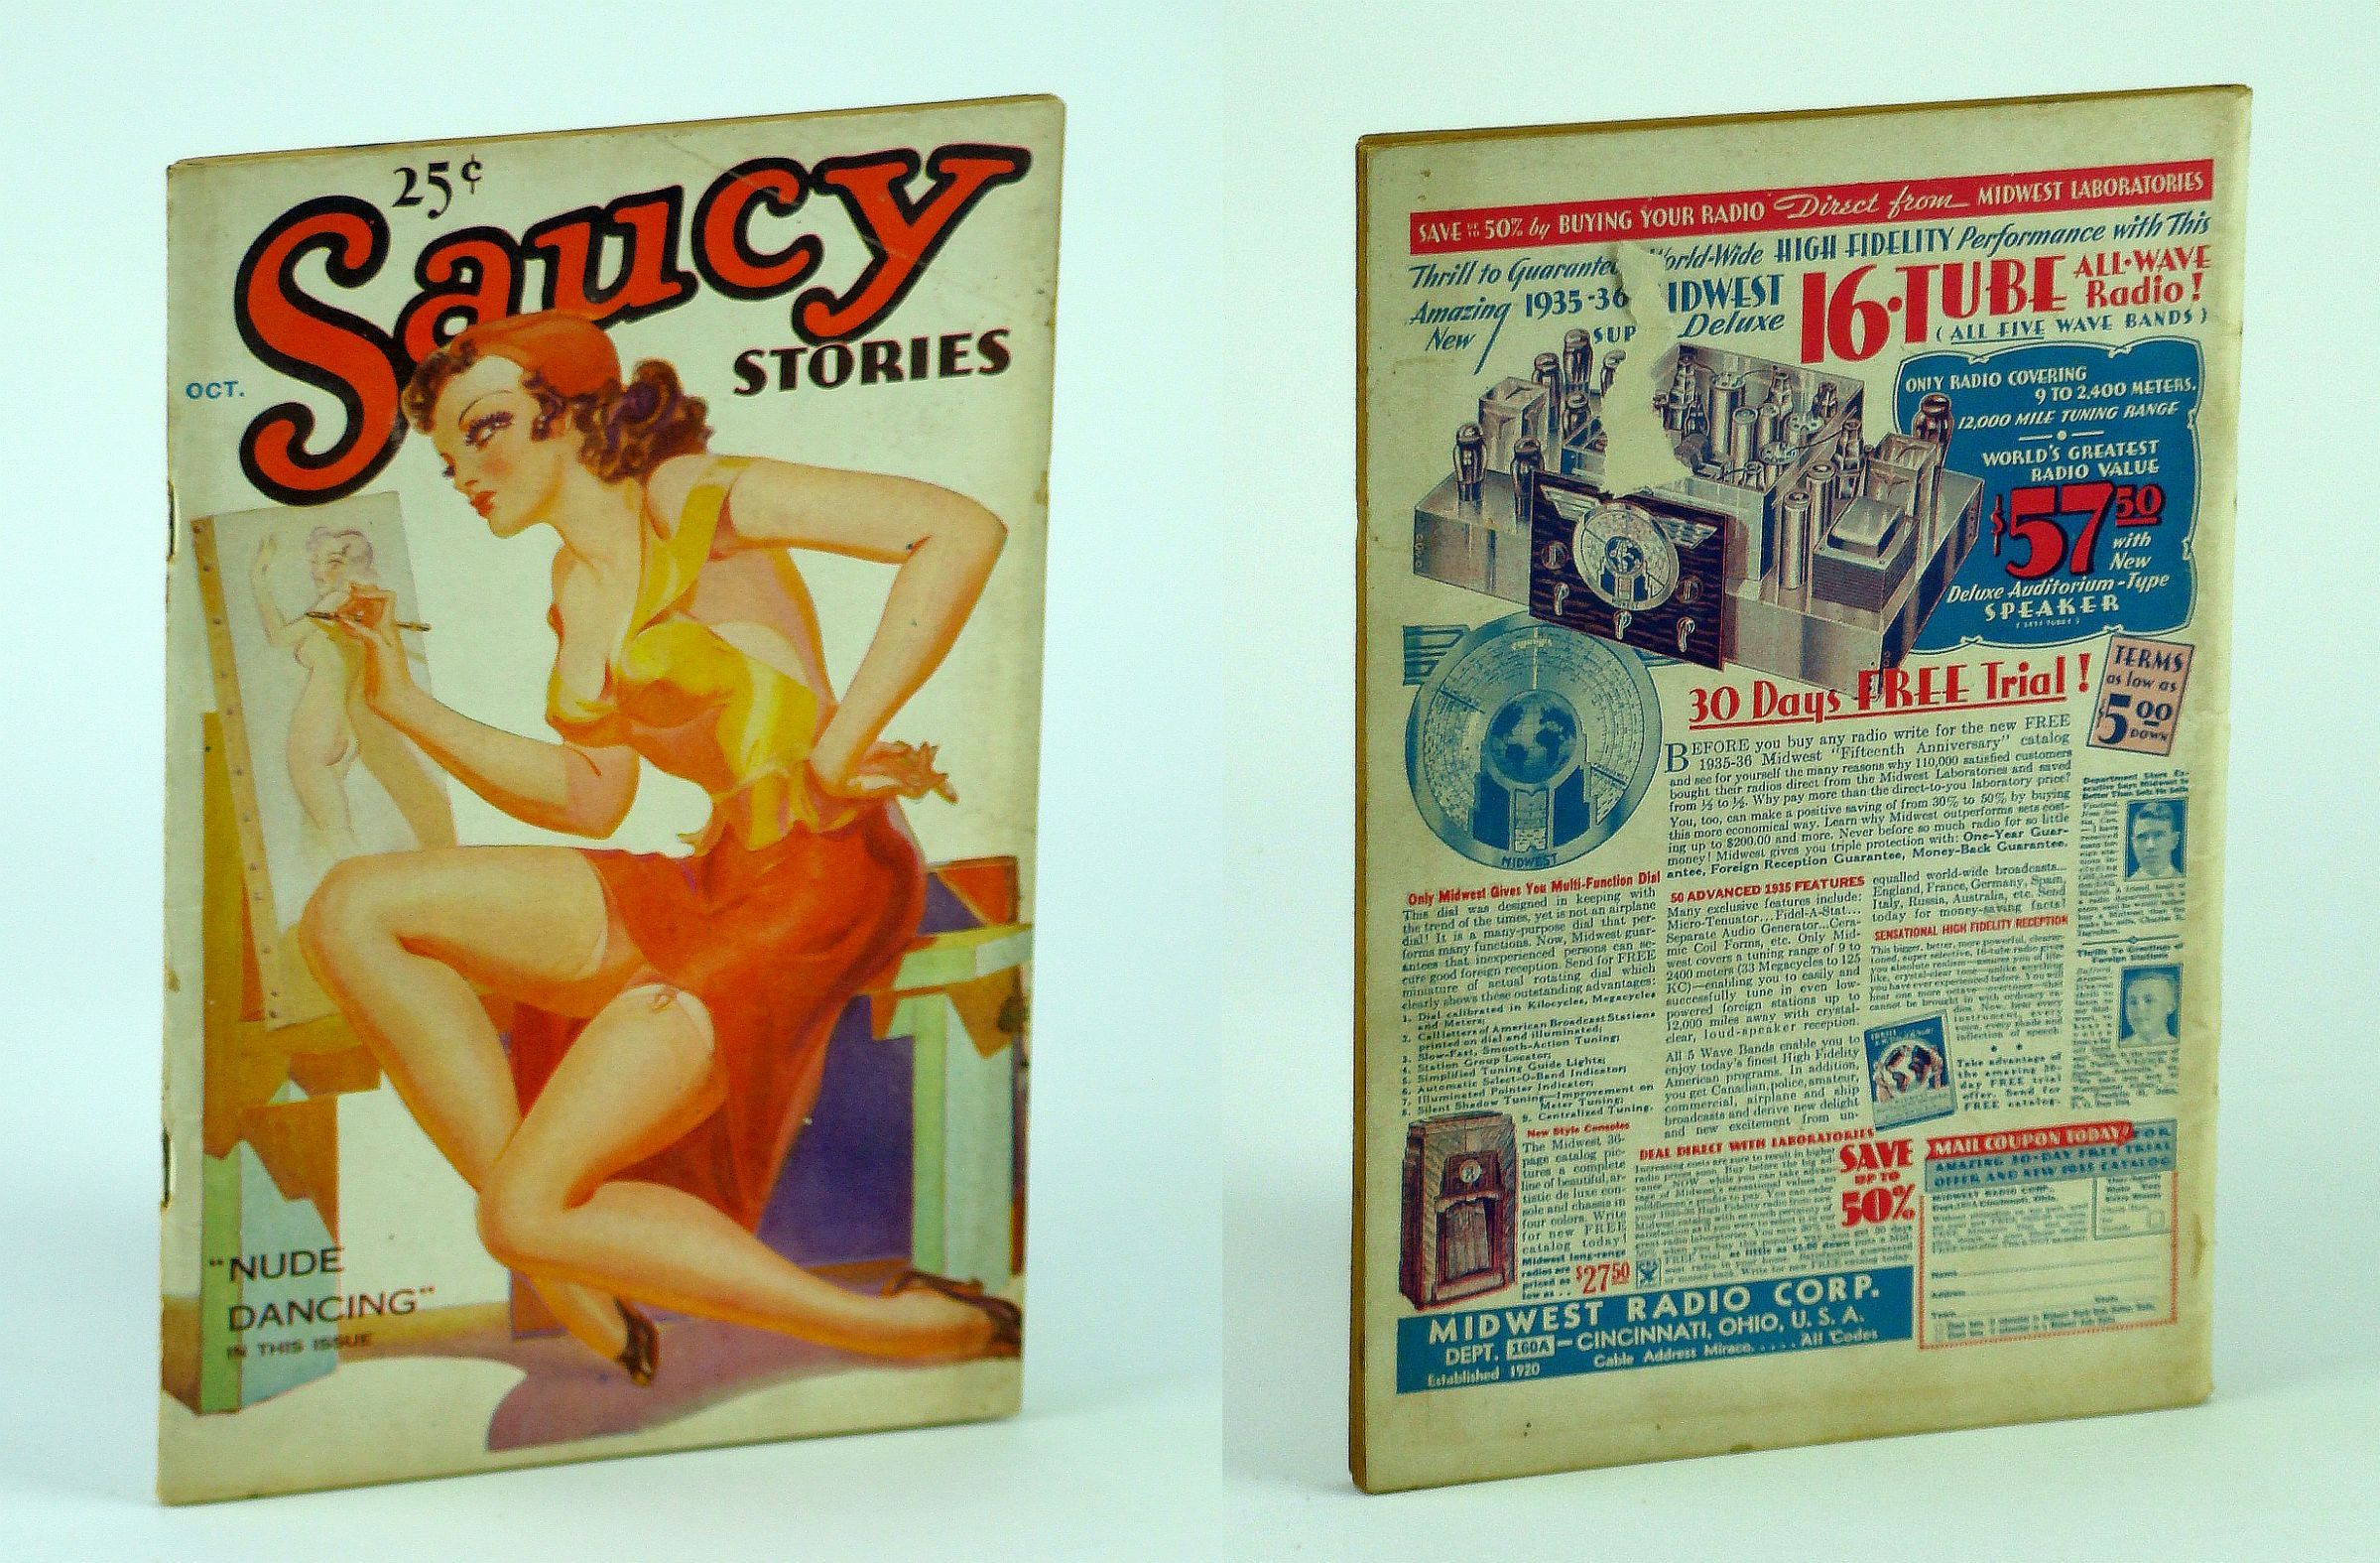 Image for Saucy Stories Digest (Magazine), October (Oct.) 1935, Volume 1, No. 1 - First/Premiere Issue